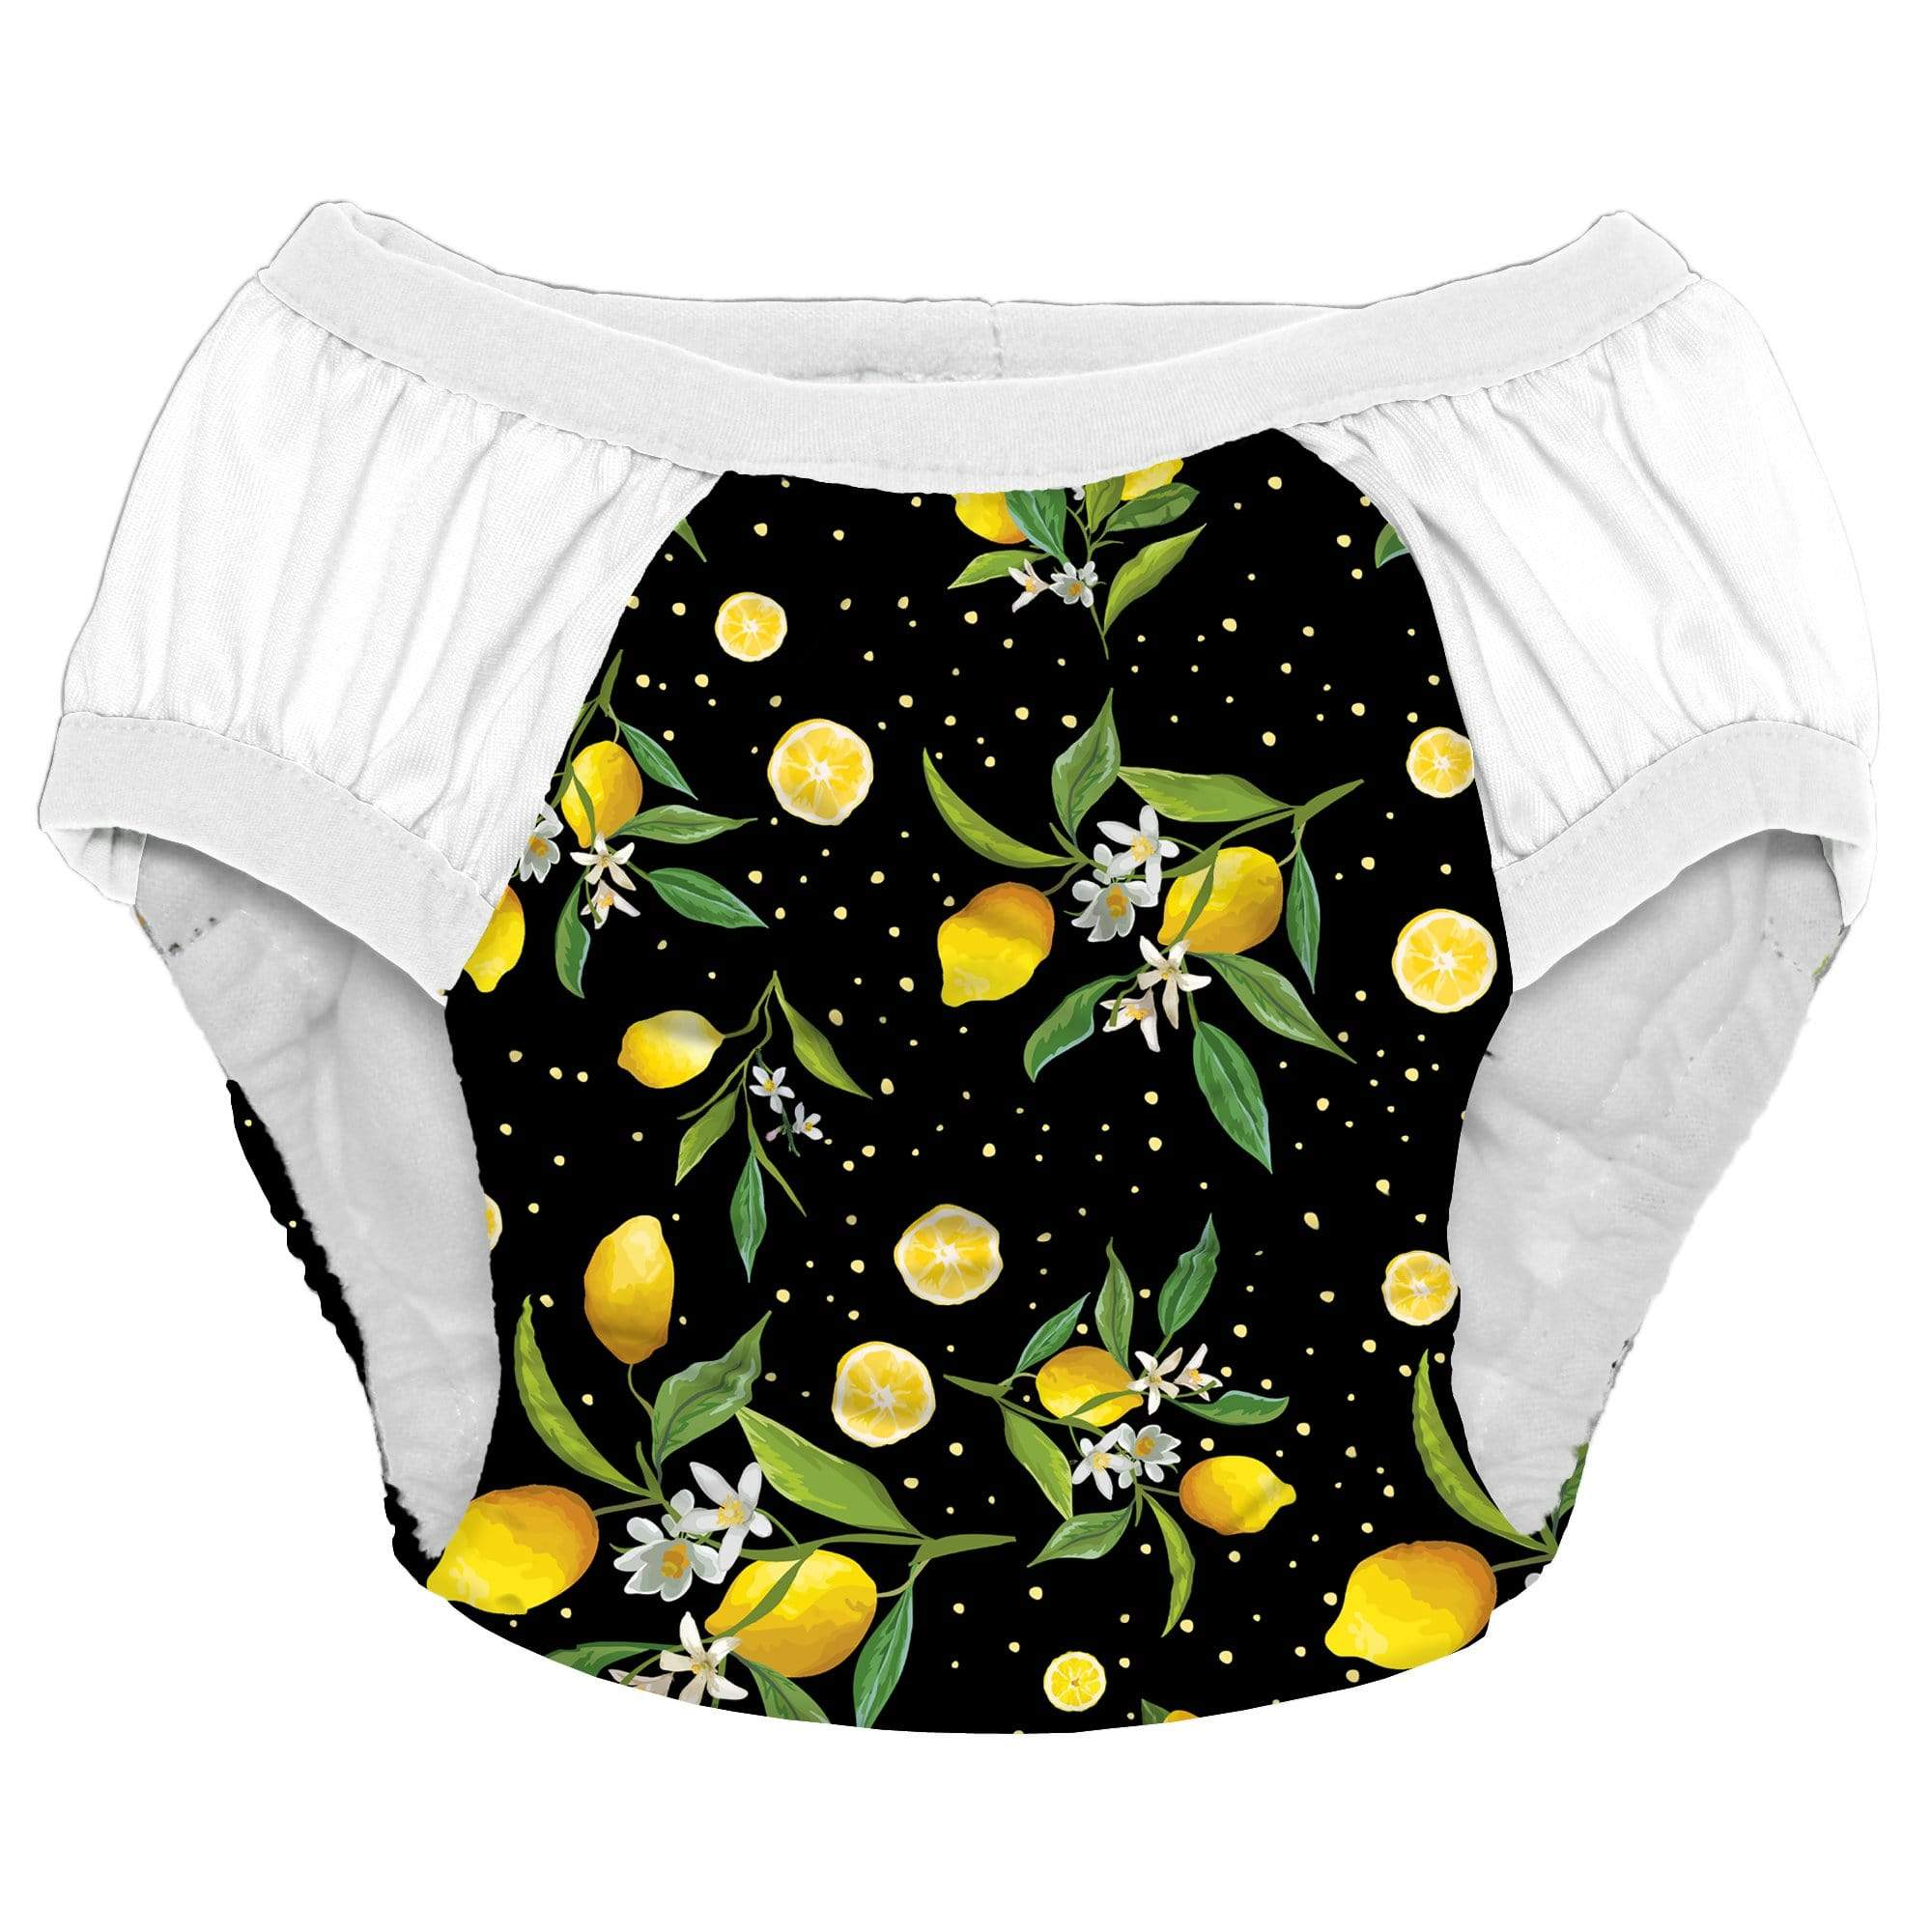 Nicki's Diapers Training Pants - Squeeze The Day